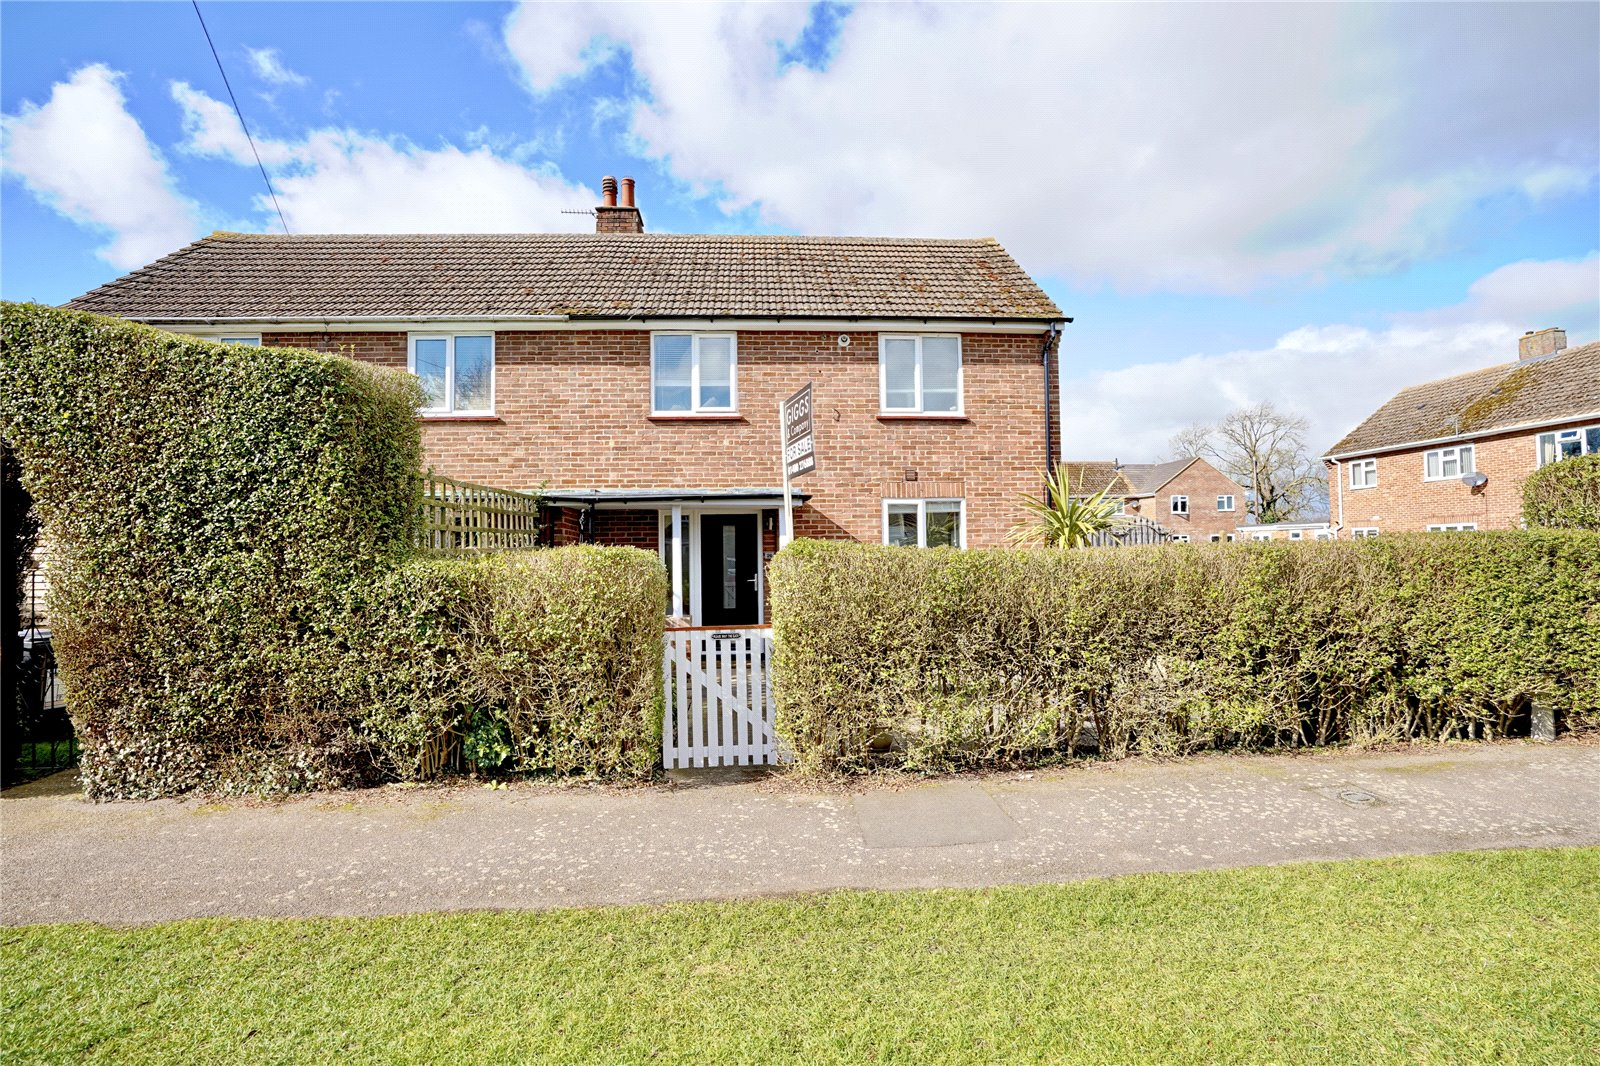 2 bed house for sale in St. Neots, PE19 1EZ, PE19